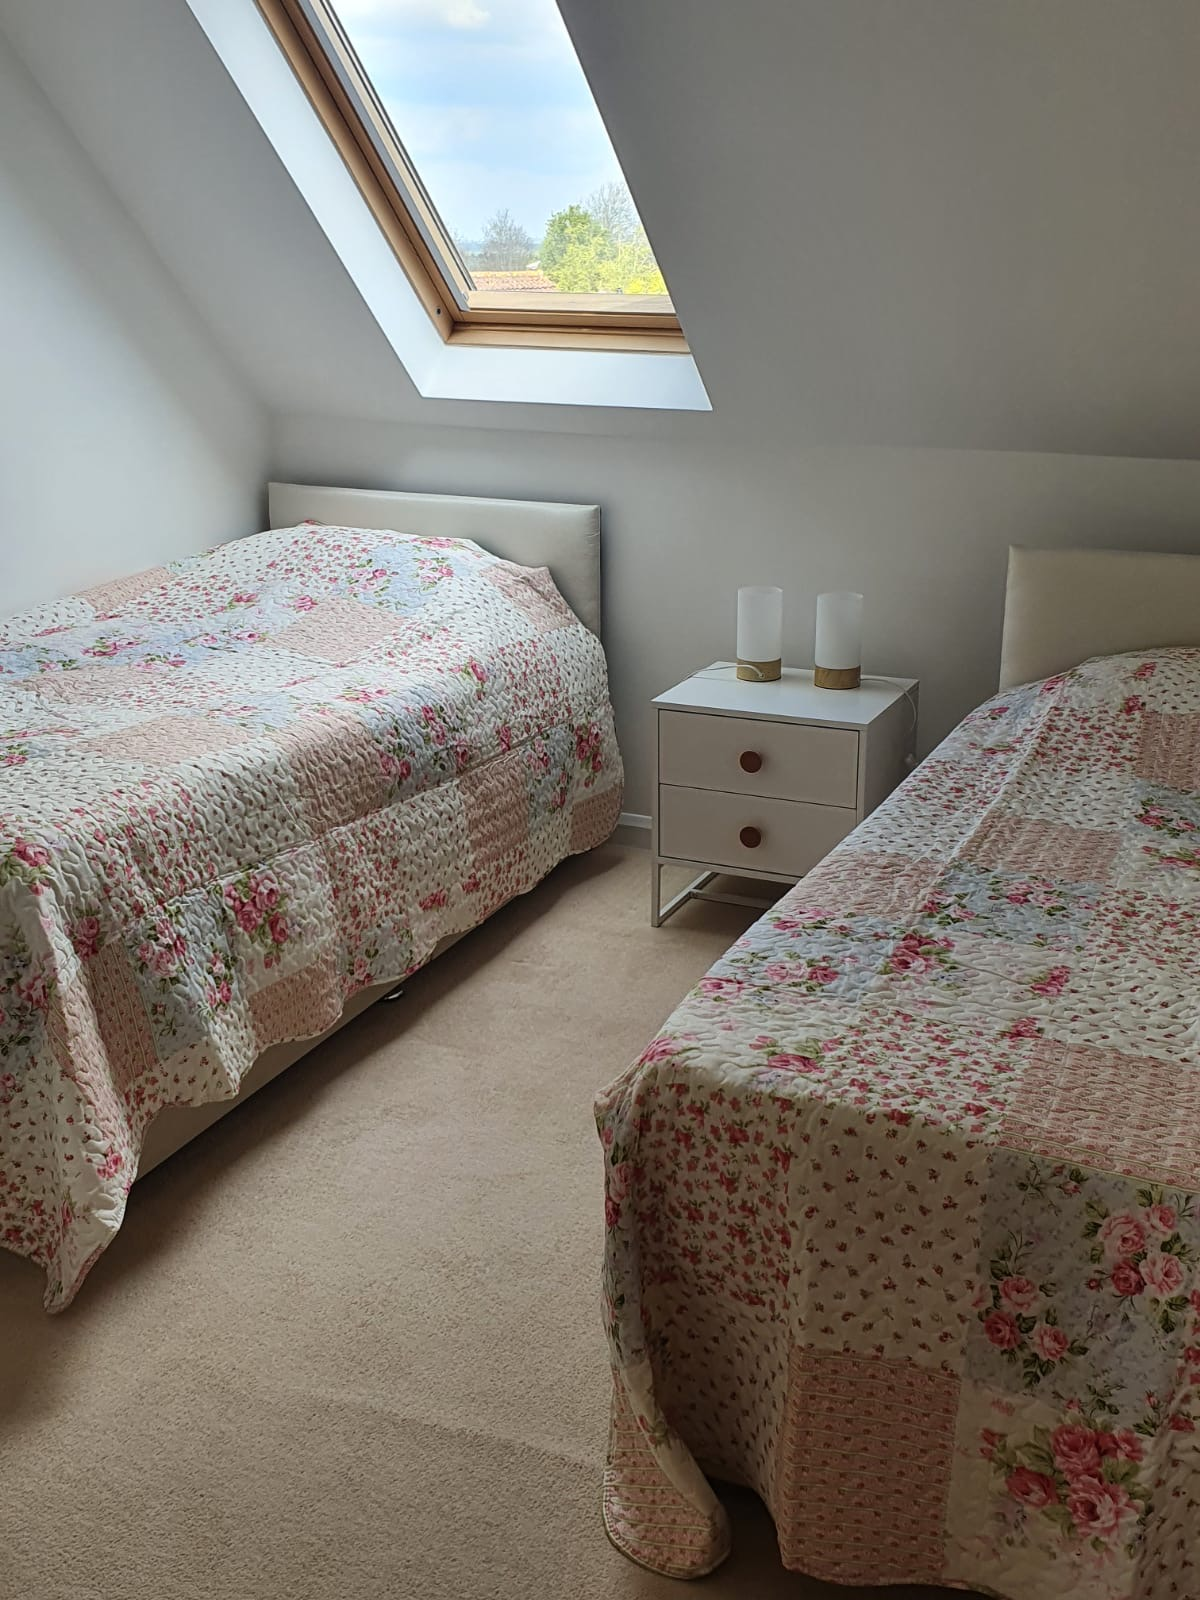 the other bedroom